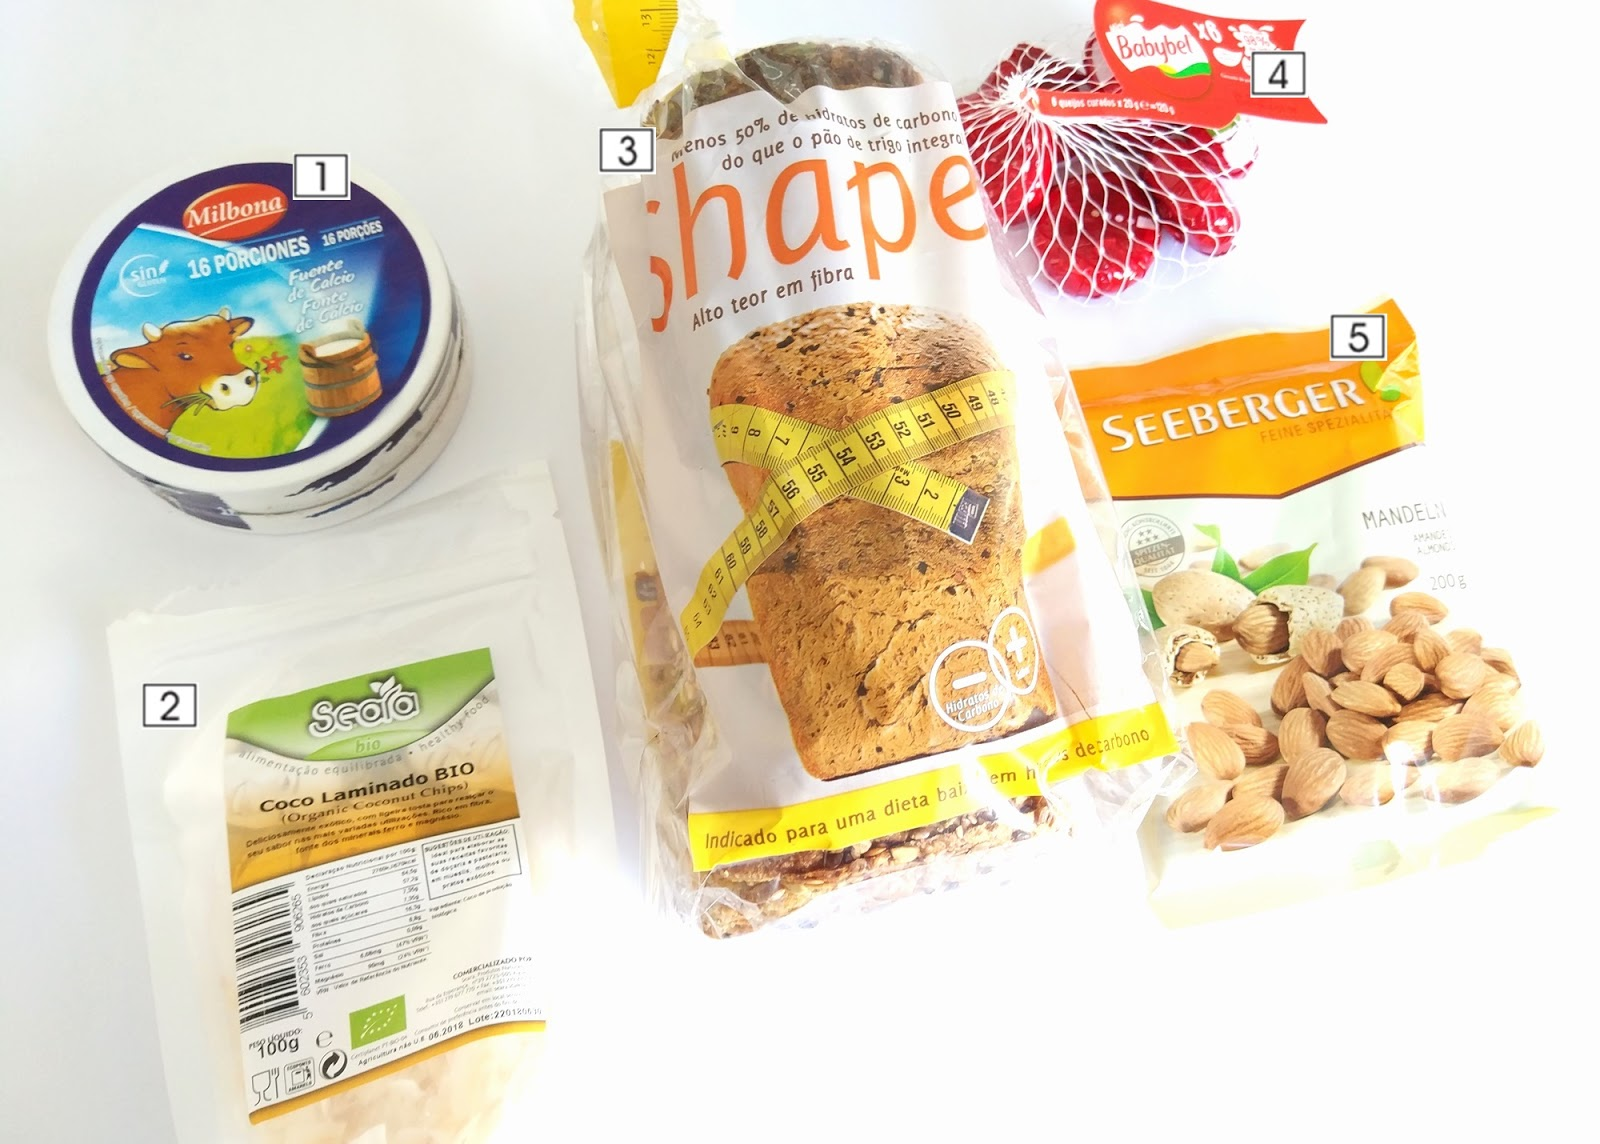 Os meus snacks low carb favoritos: Milbona, Seara, Shape, Babybel, Seeberger